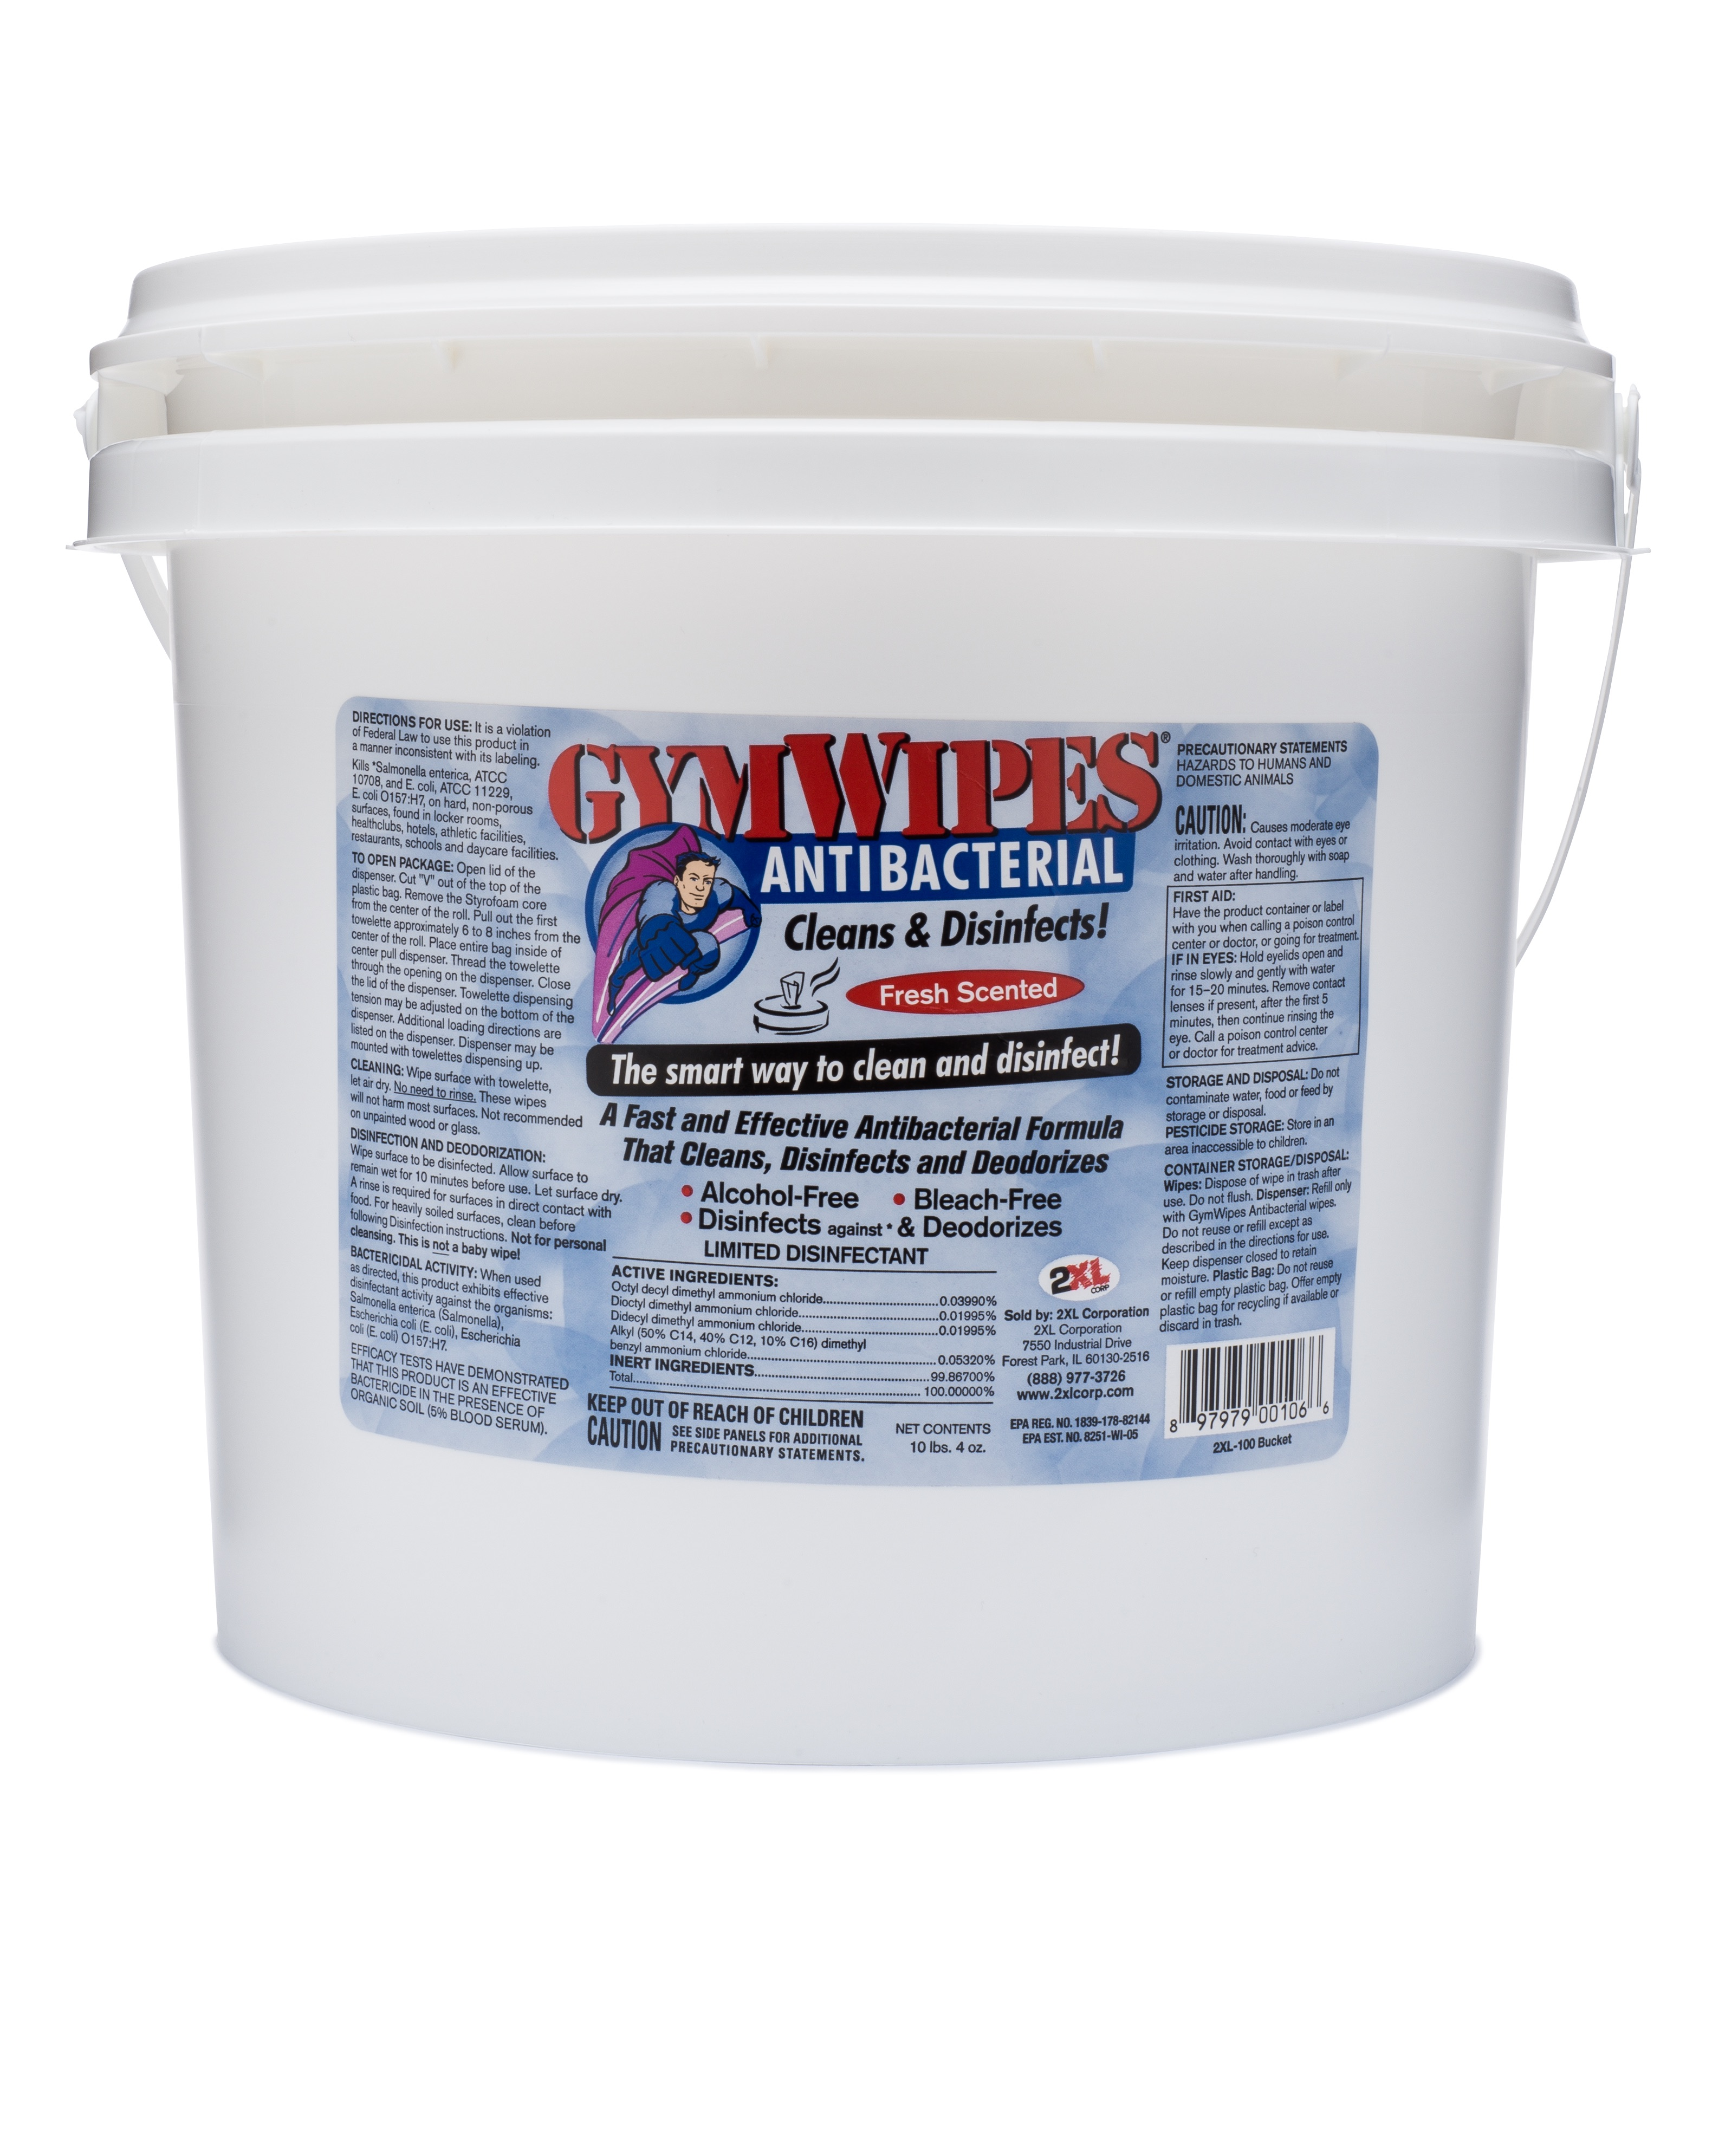 GYMWIPES ANTIBACTERIAL